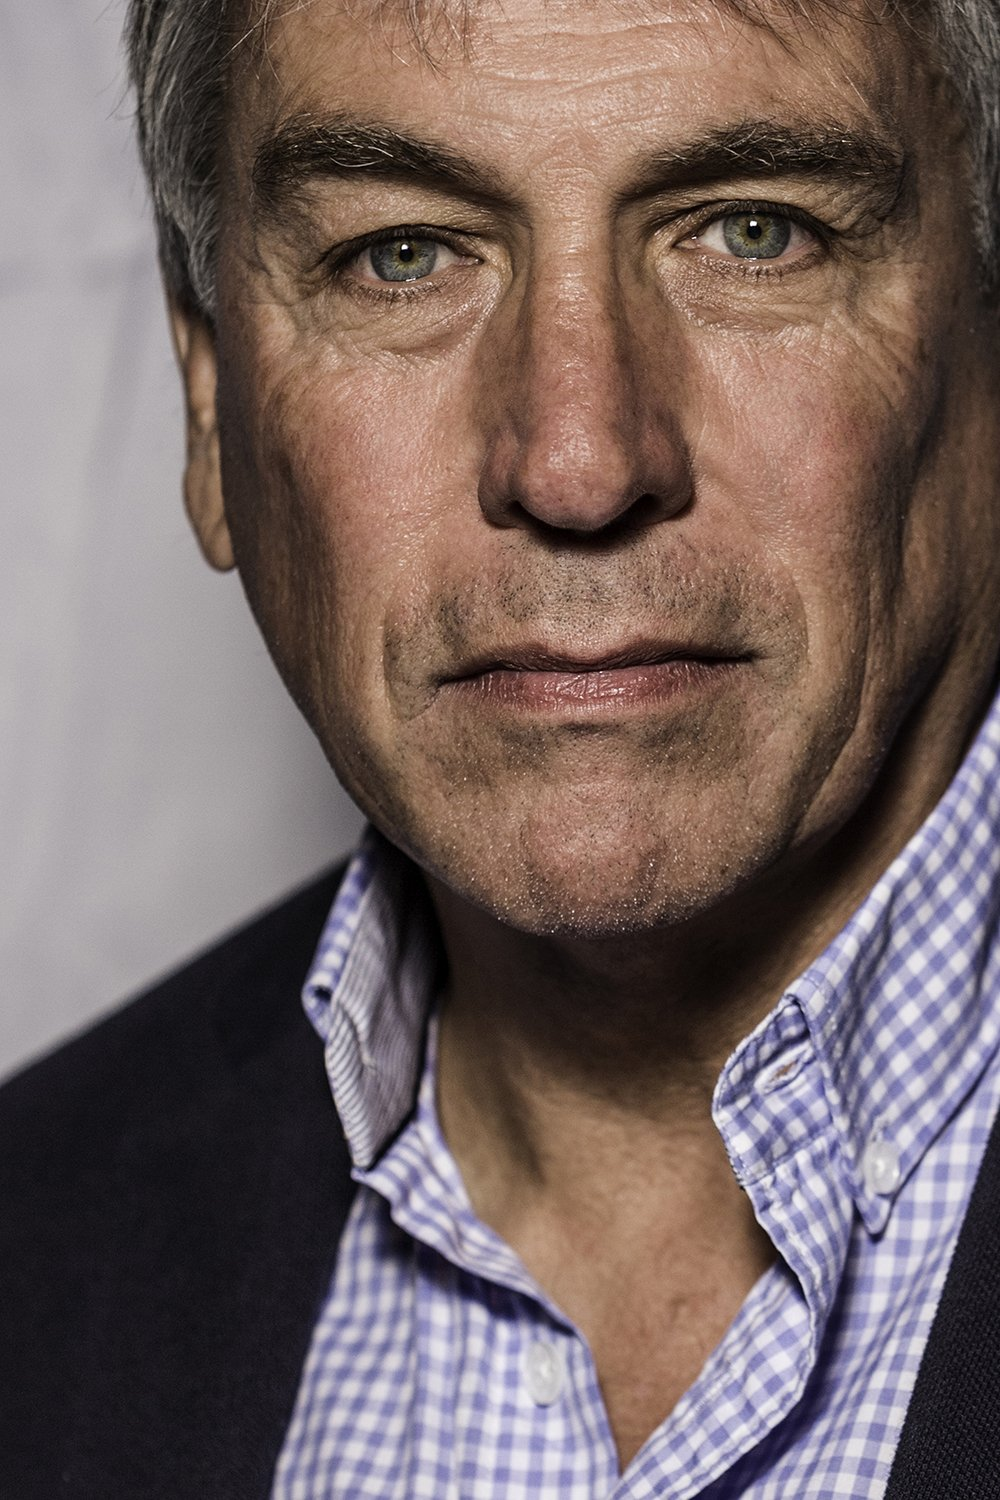 John Inverdale © Nick Gregan portrait photographer in London